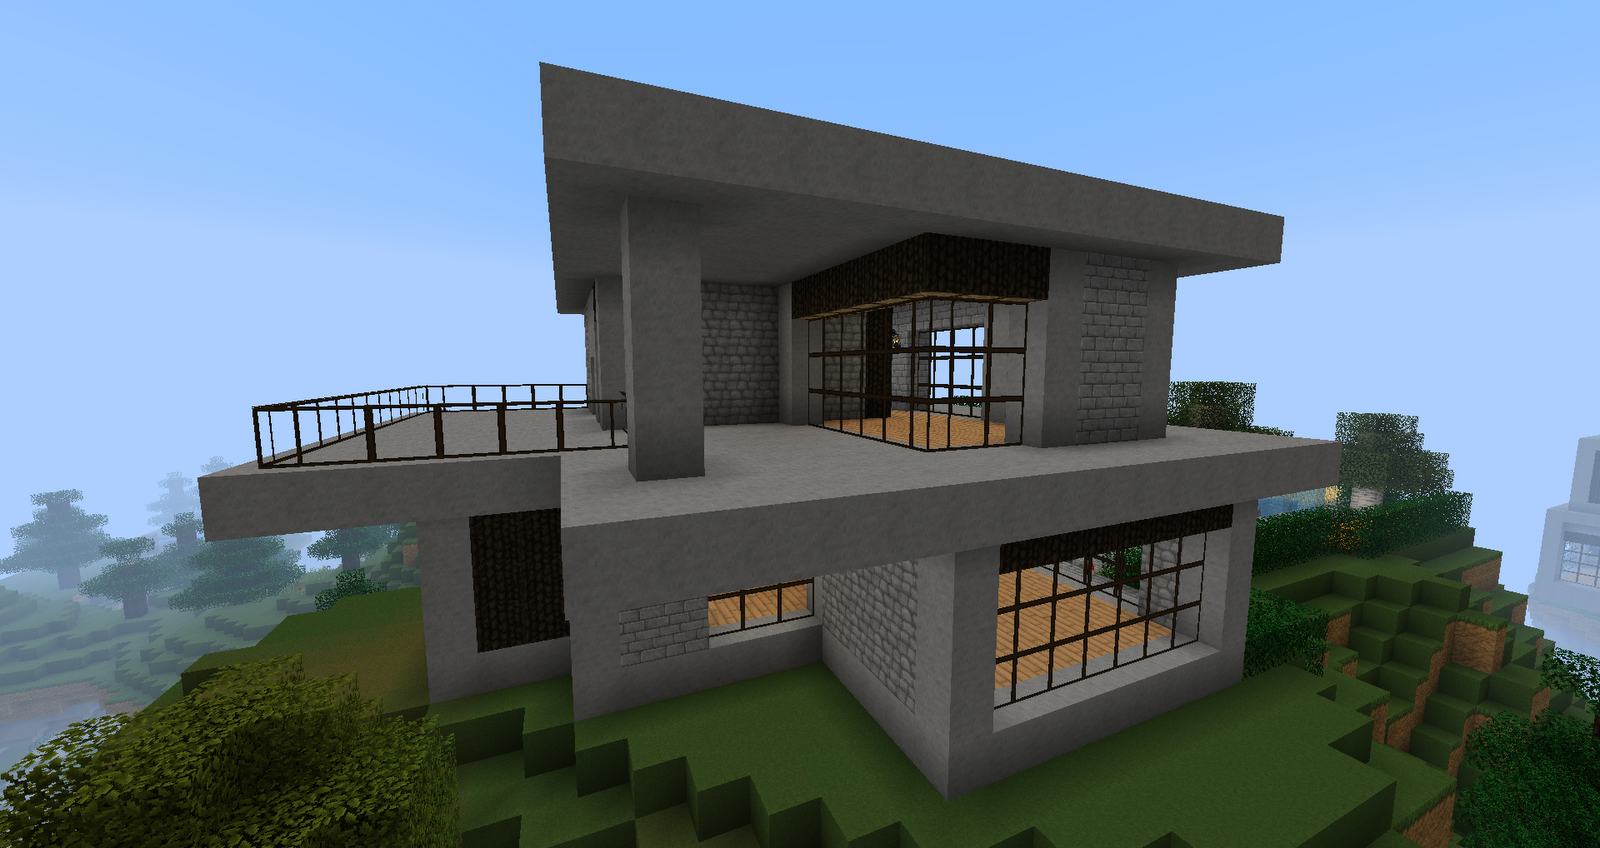 Ruked on minecraft modern house schematics 02 small for Modern house 52